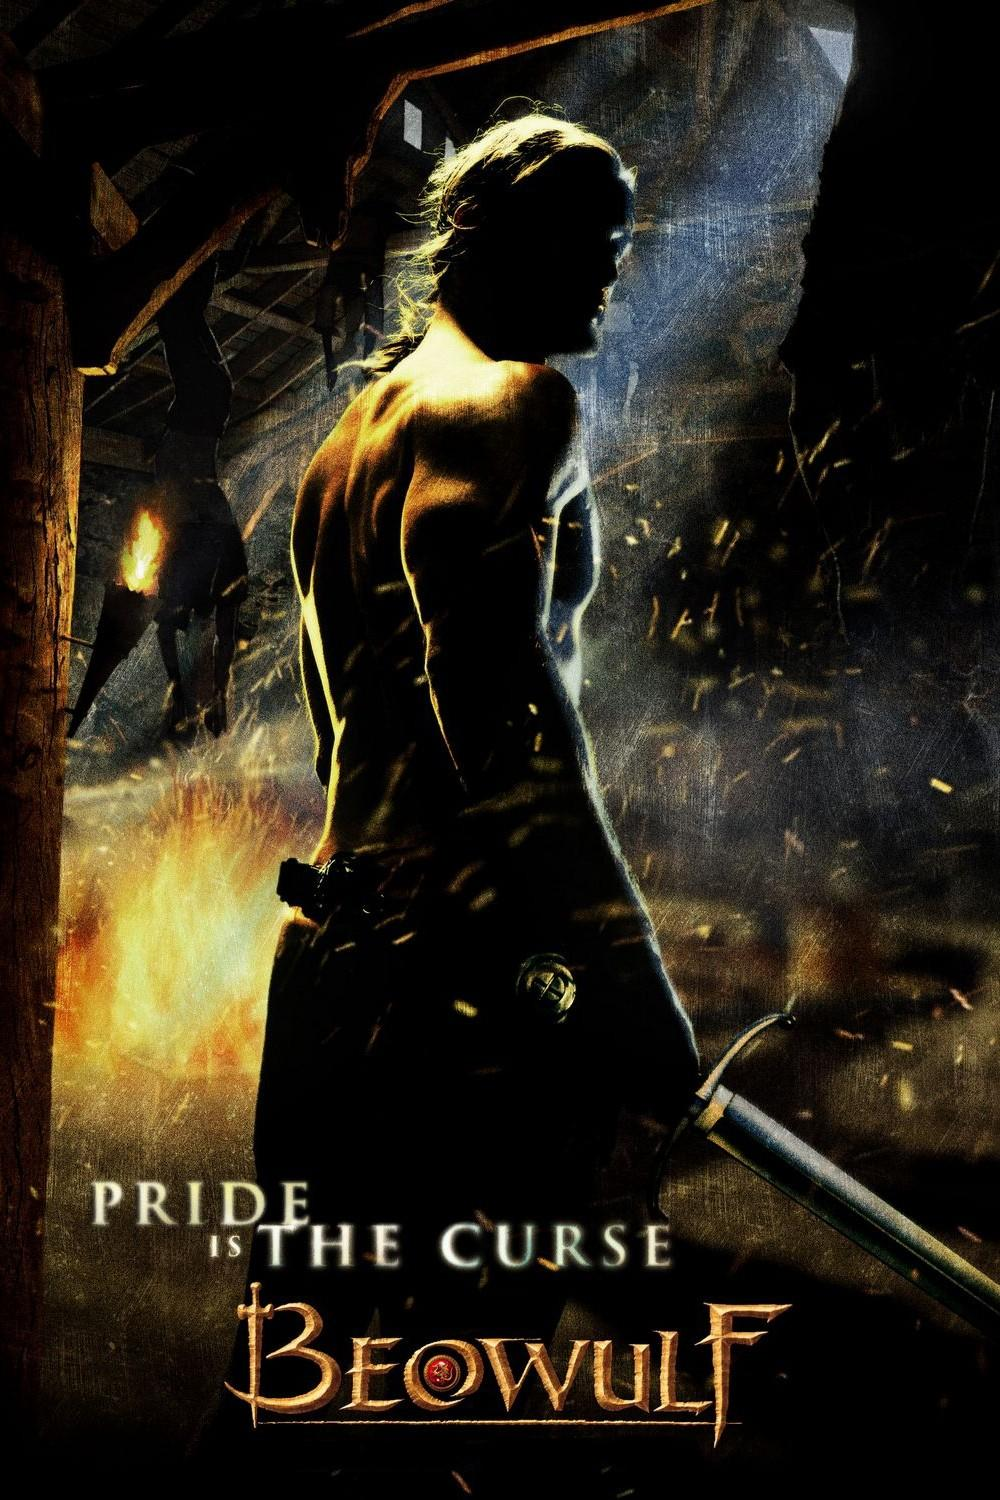 evaluation of beowulf movie 2007 Movie review of beowulf (2007) by the critical movie critics.